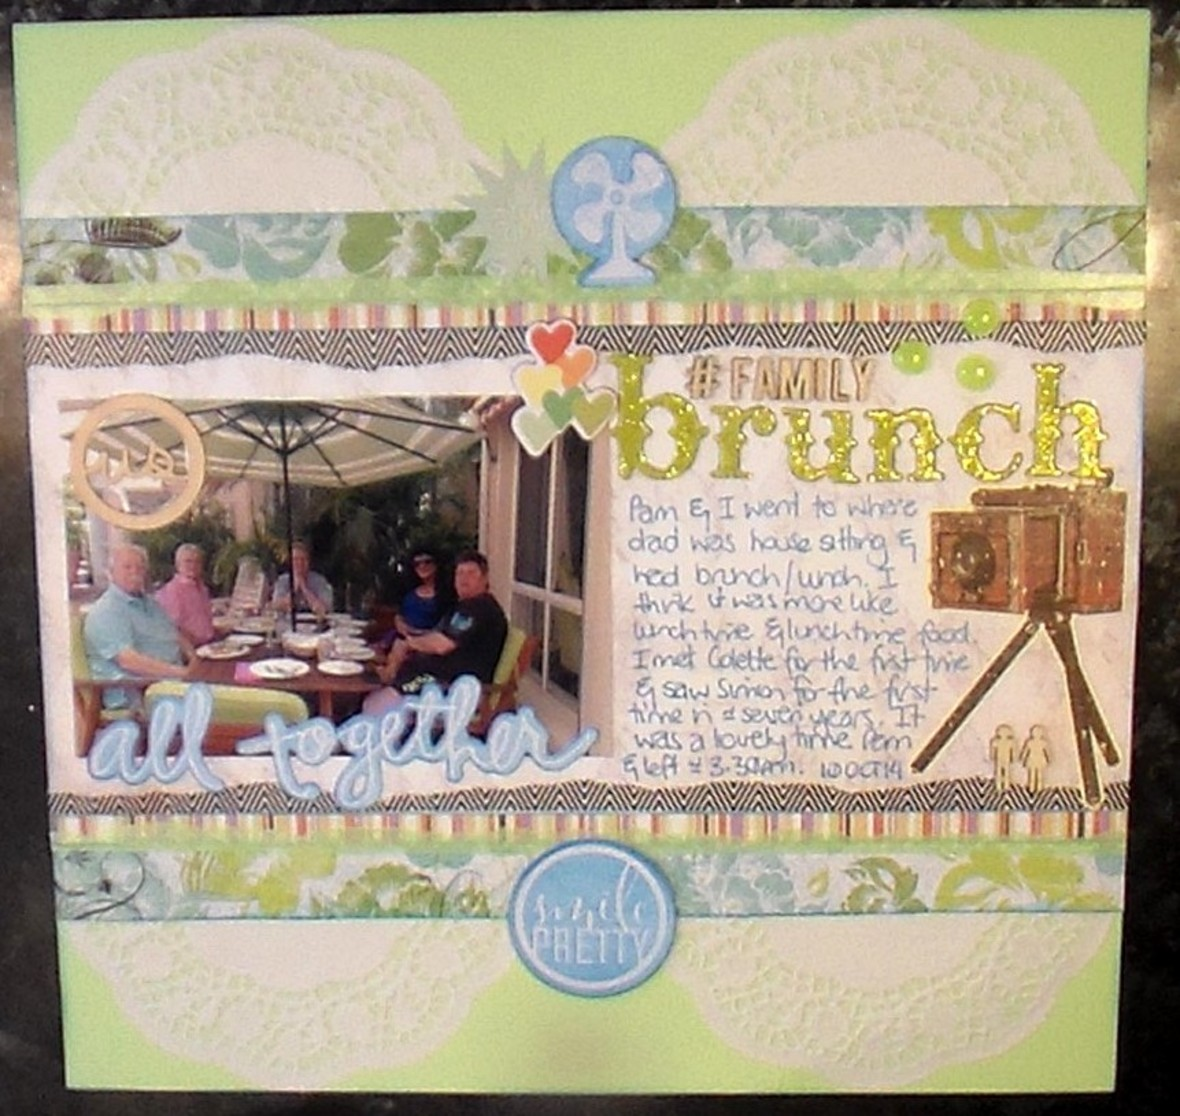 201603    family brunch   fmak  5 2015 lo  03 original